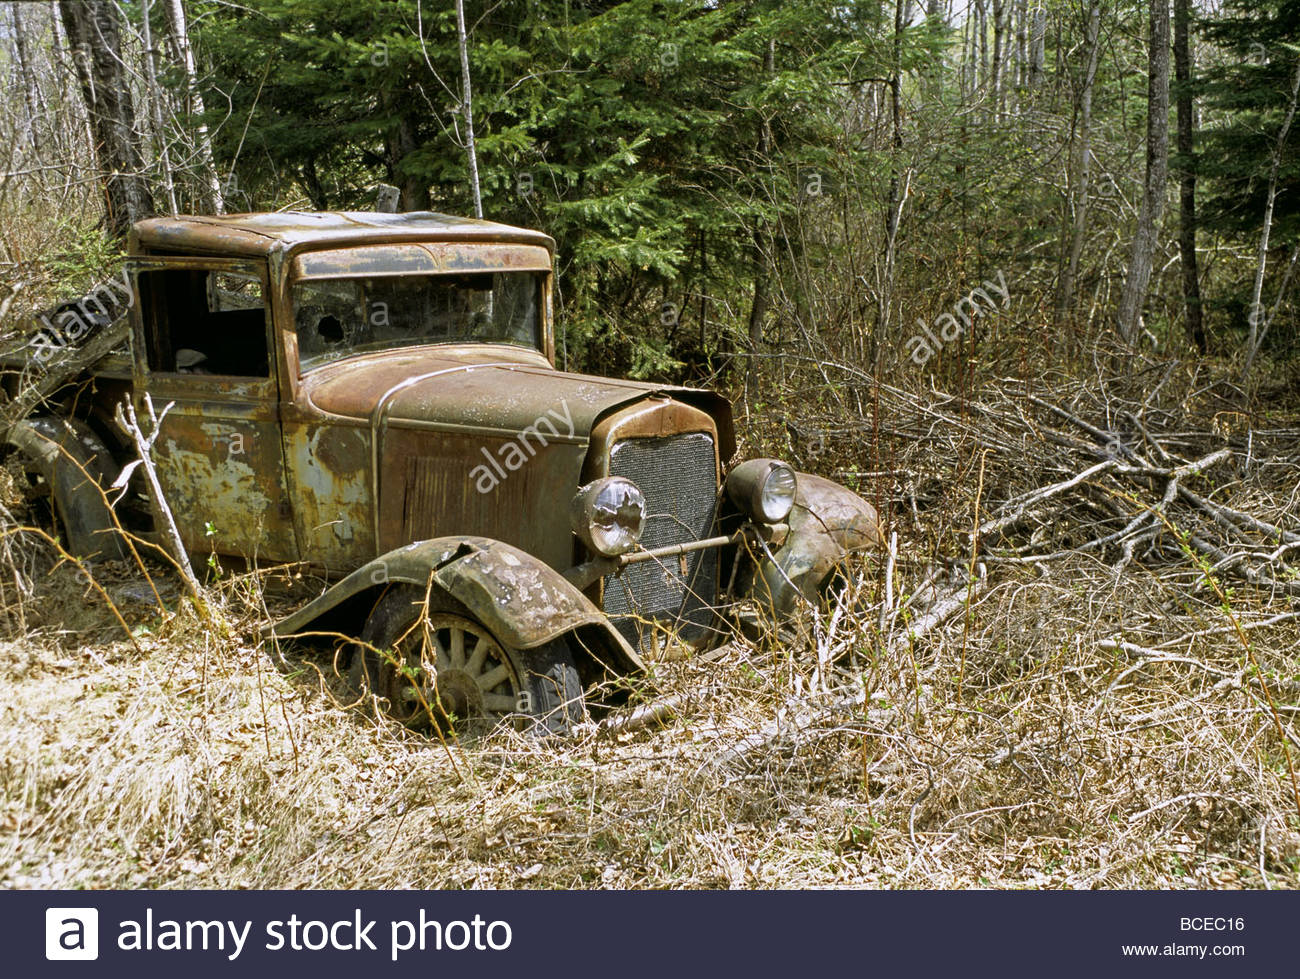 1929 Ford Model A pickup truck in an abandoned goldrush town